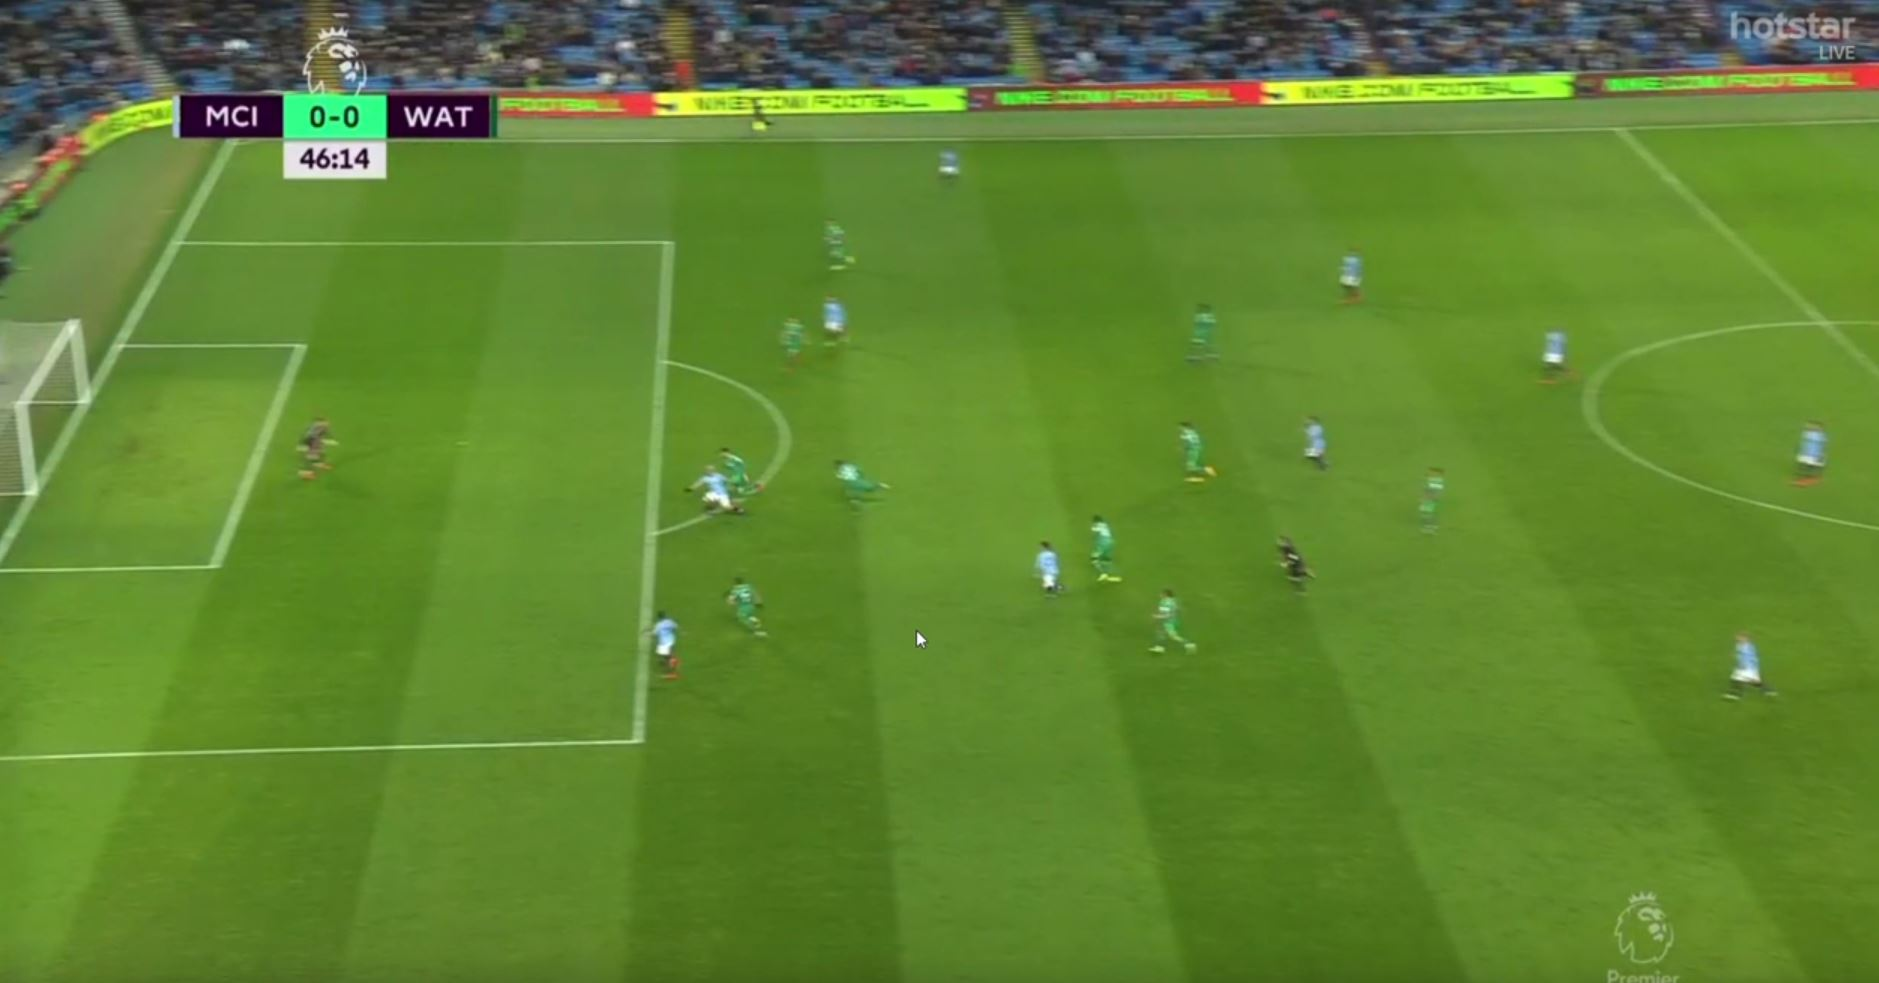 WATCH: Blatant Offside Goal Disallowed Then Overturned By The Ref. Madness!